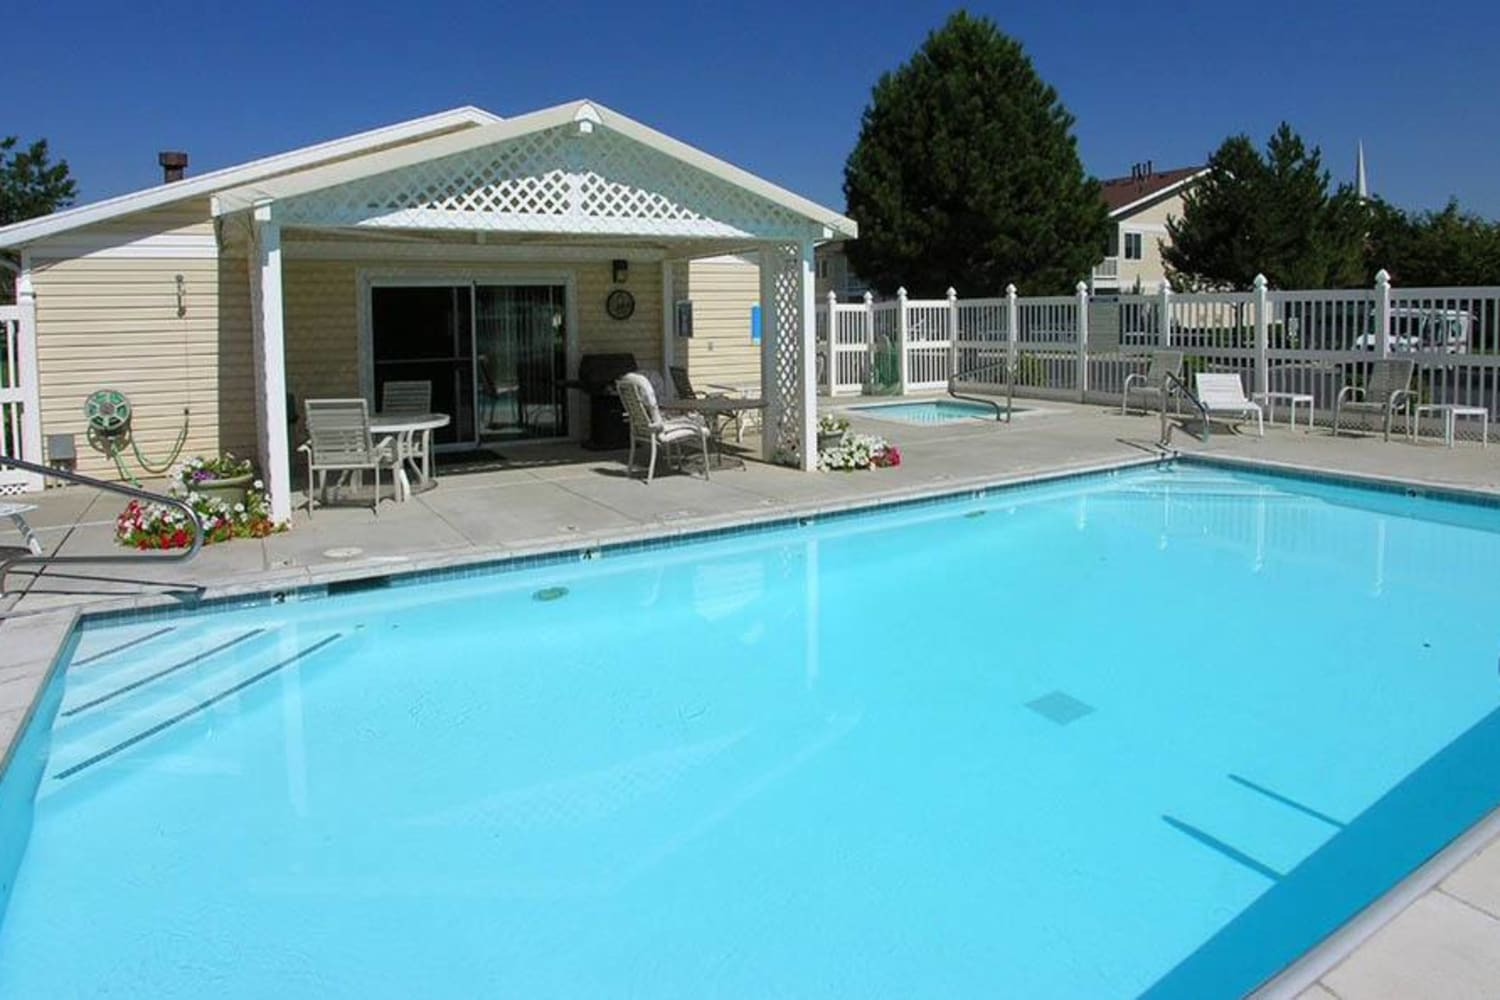 Swimming pool at Lakeside Village Apartments in Salt Lake City, Utah